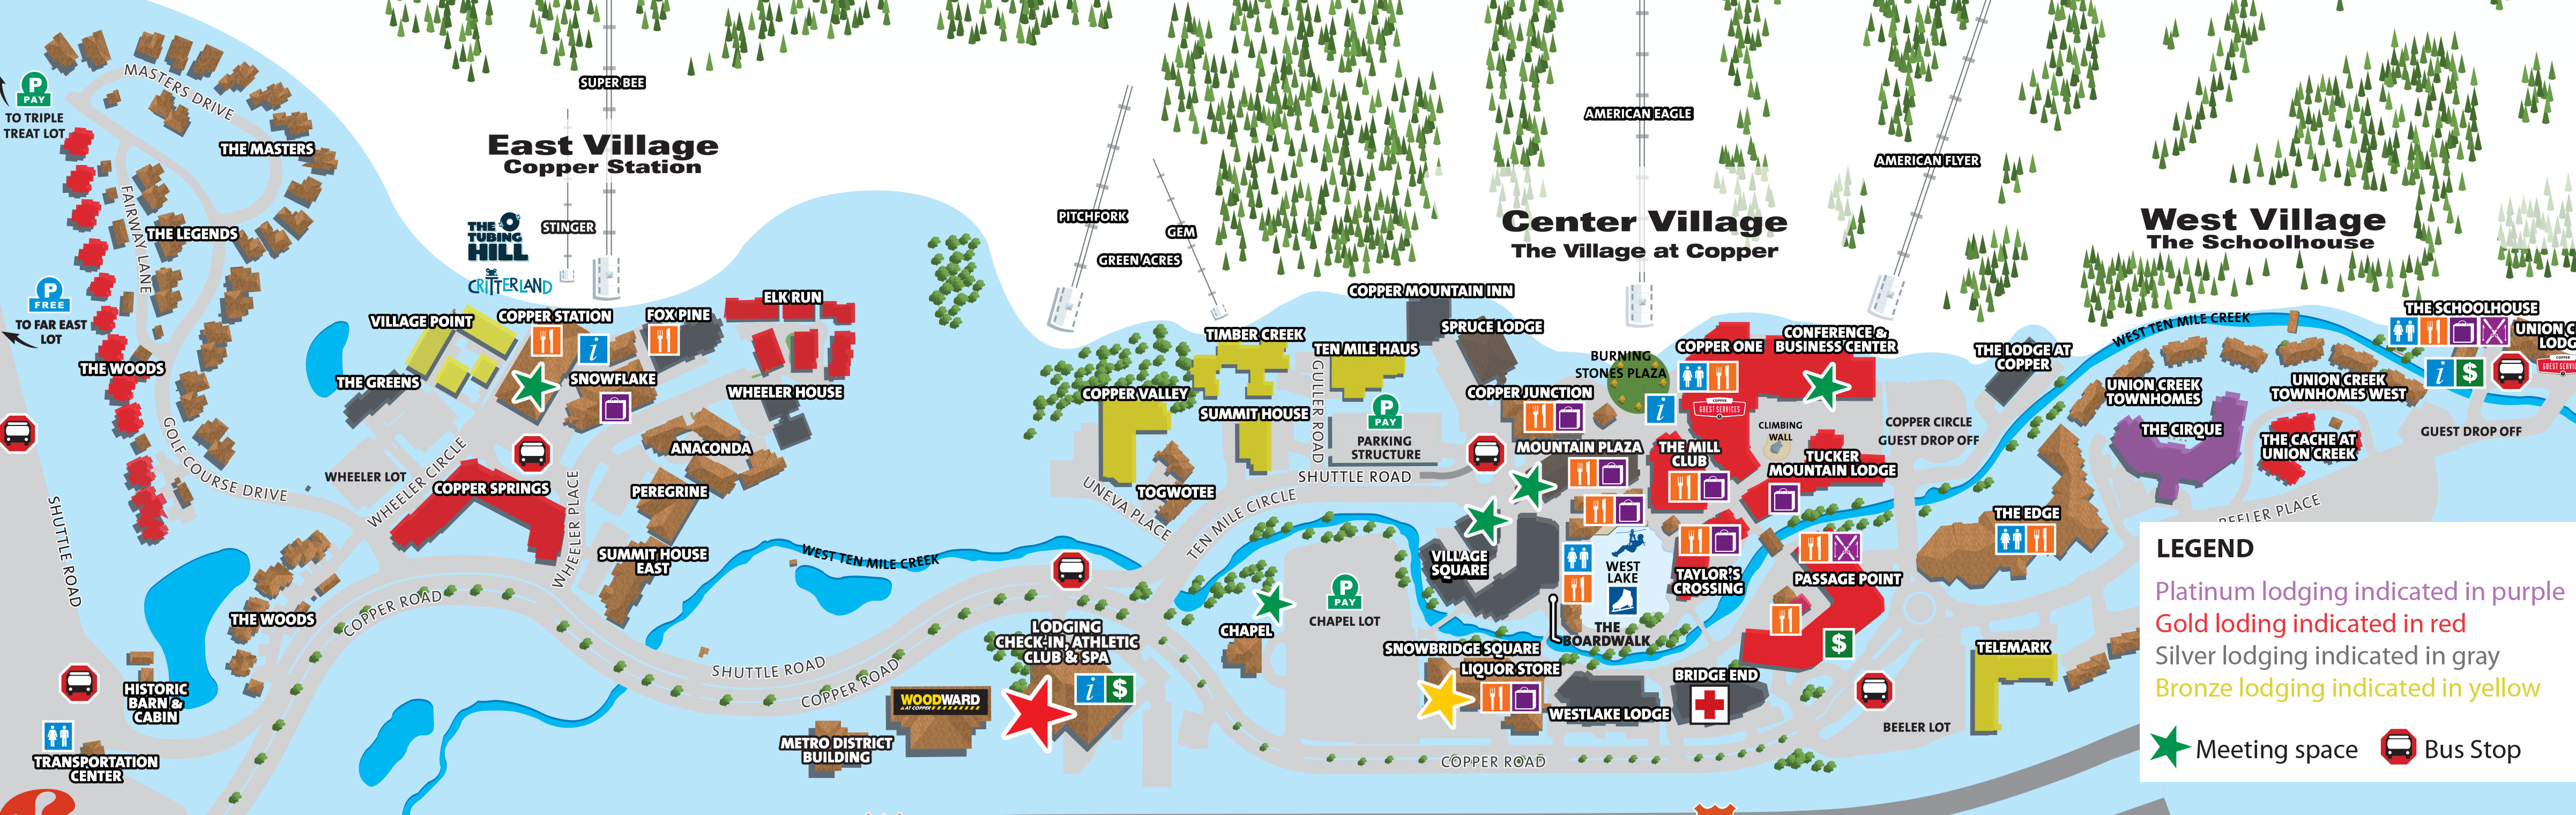 View Group Lodging Map Mountain View2